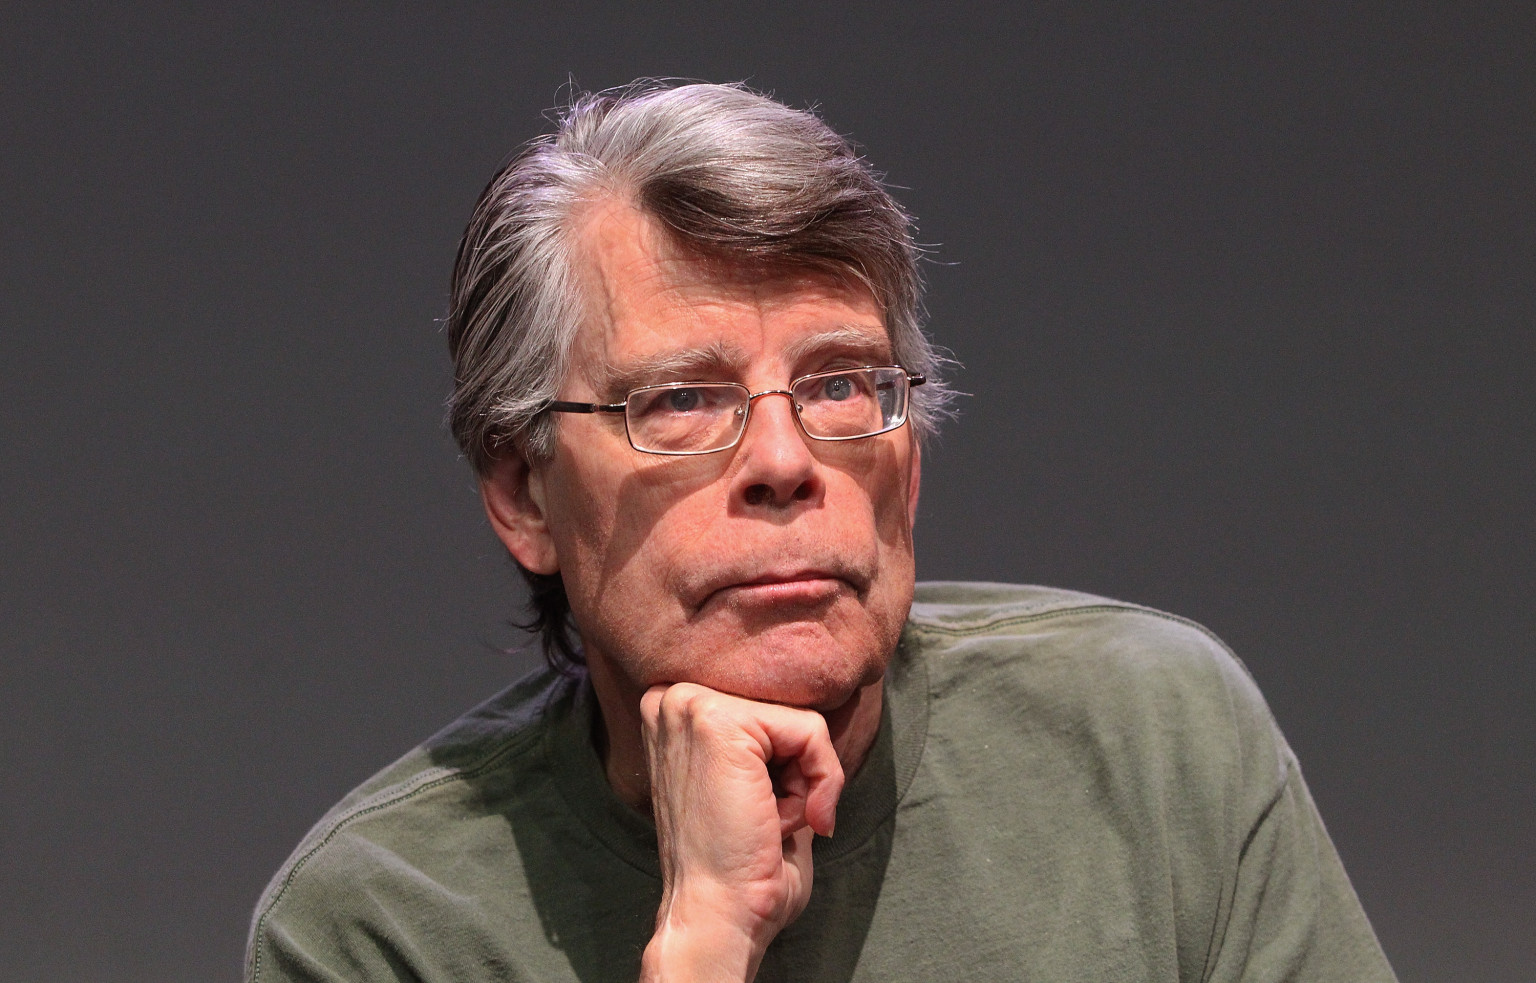 Stephen King earned a 45 million dollar salary - leaving the net worth at 400 million in 2018